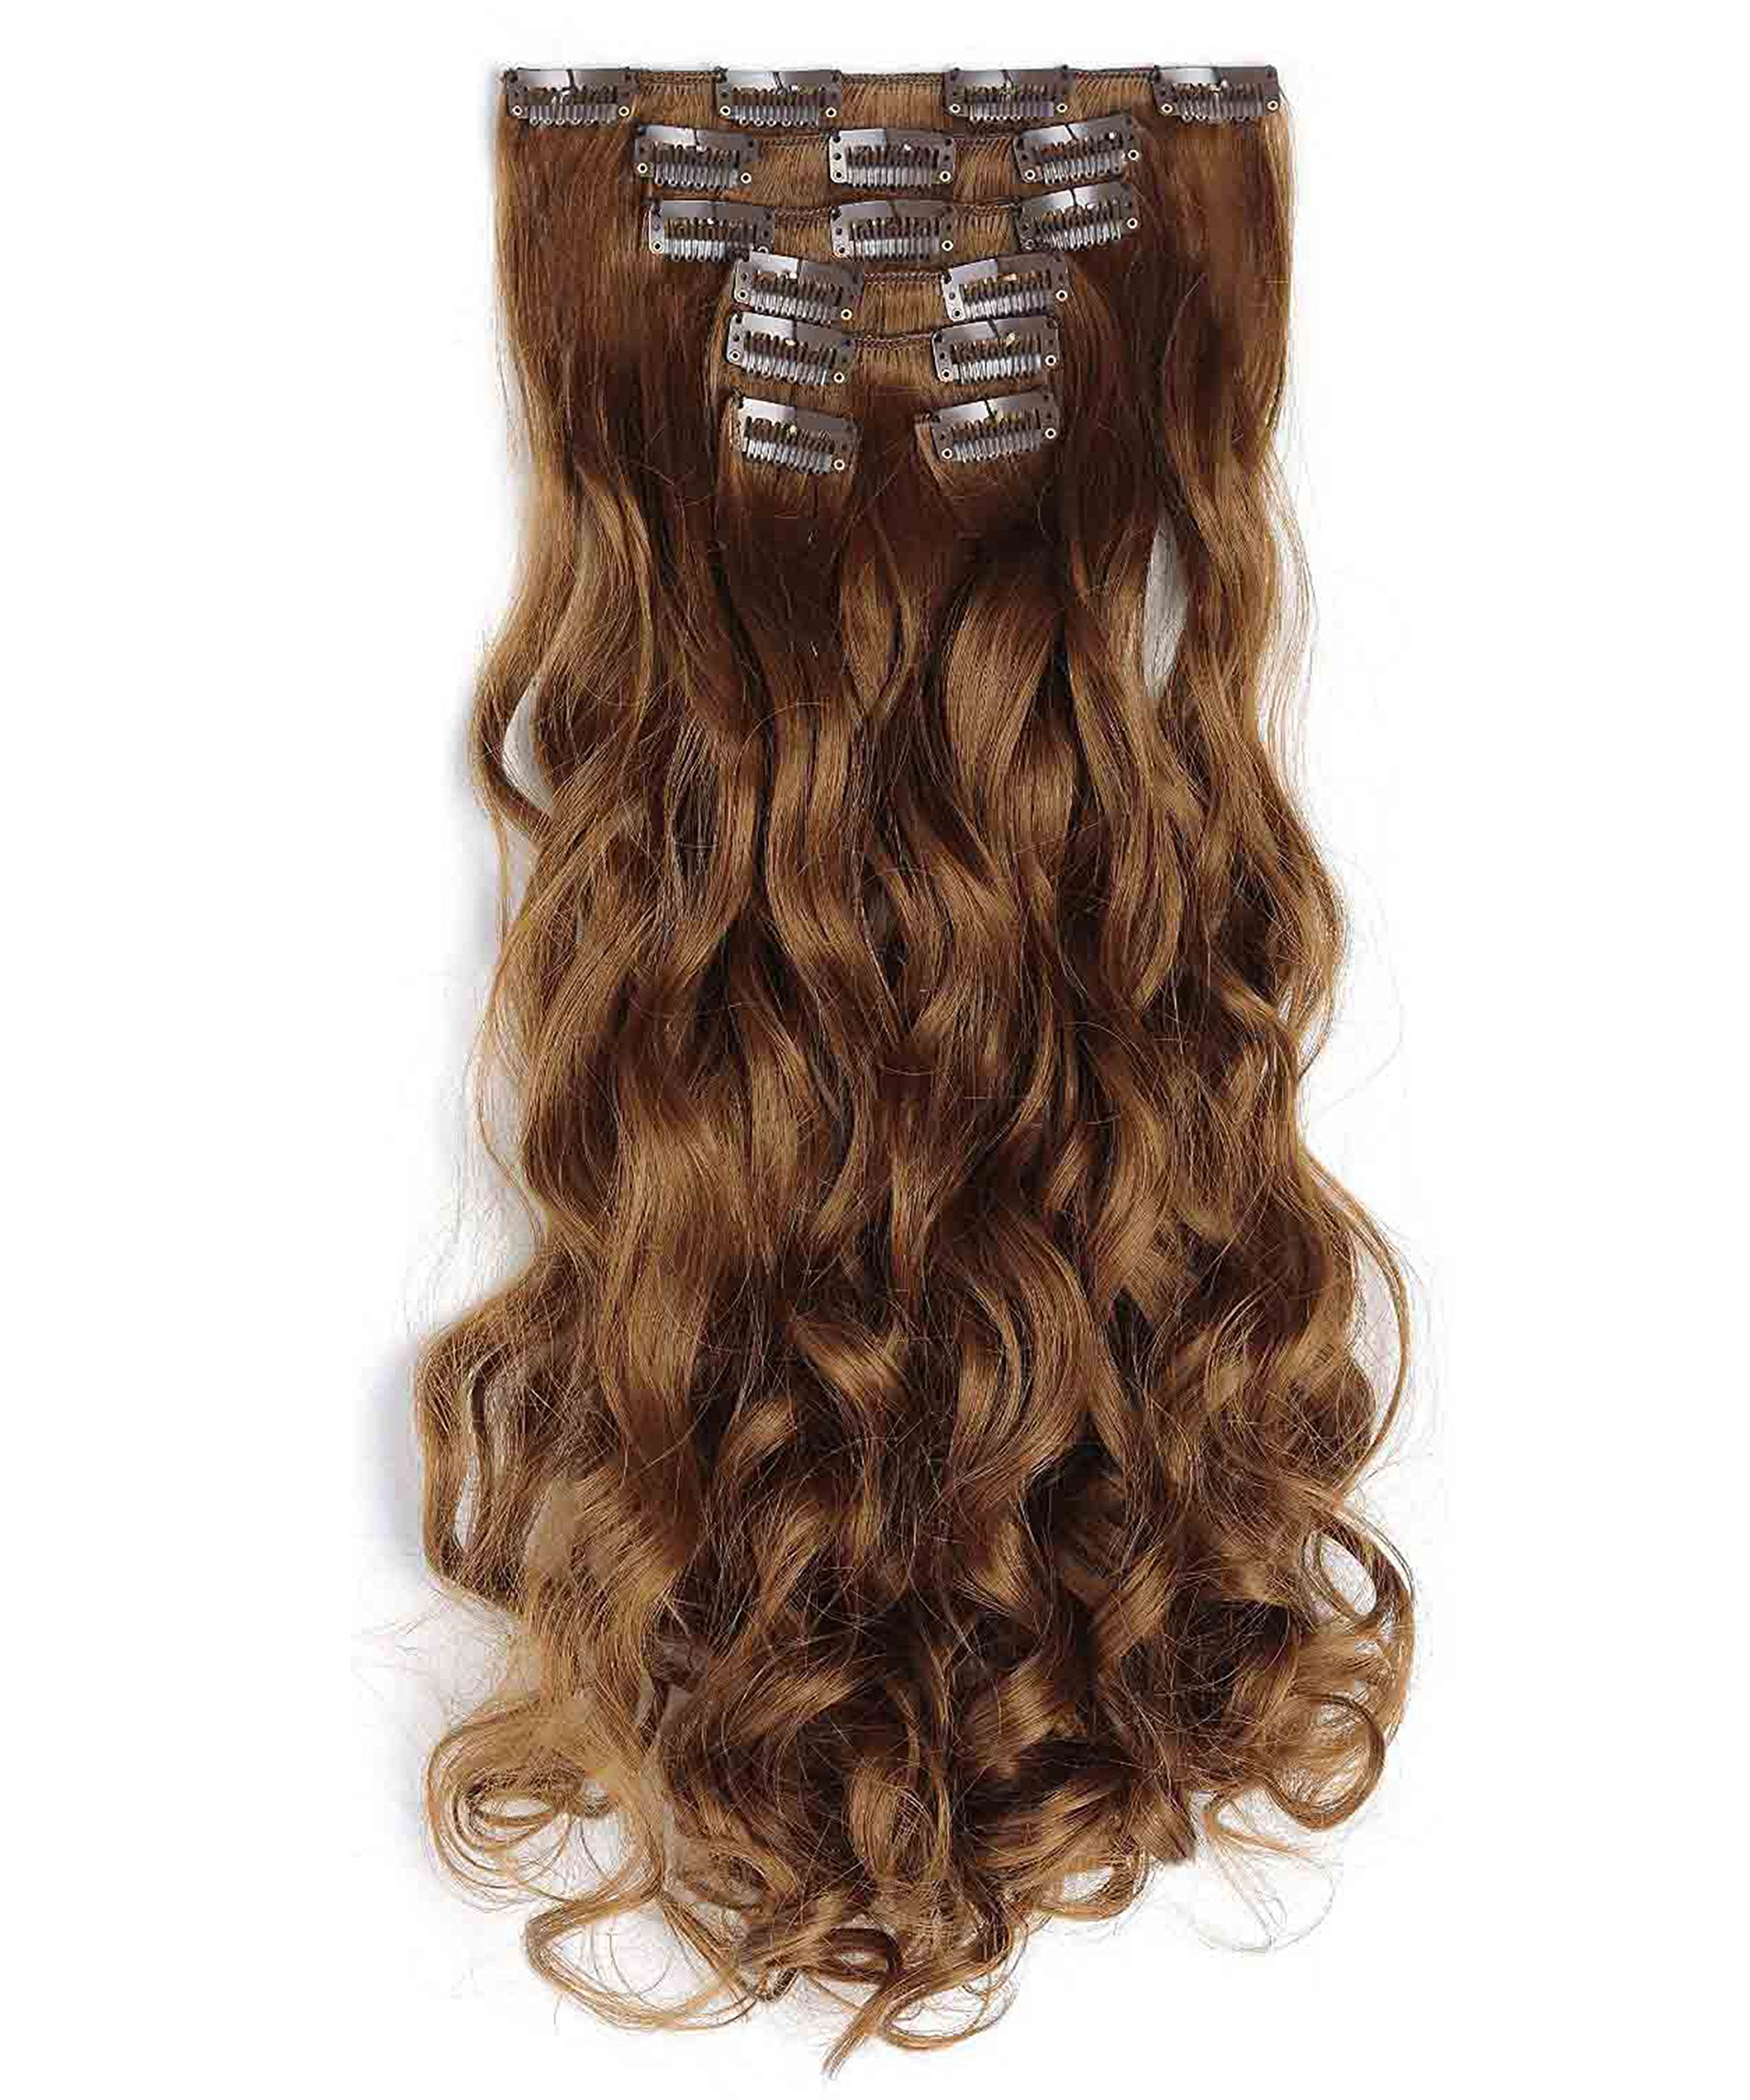 Amazon Reecho 16 1 Pack 34 Full Head Curly Wavy Clips In On